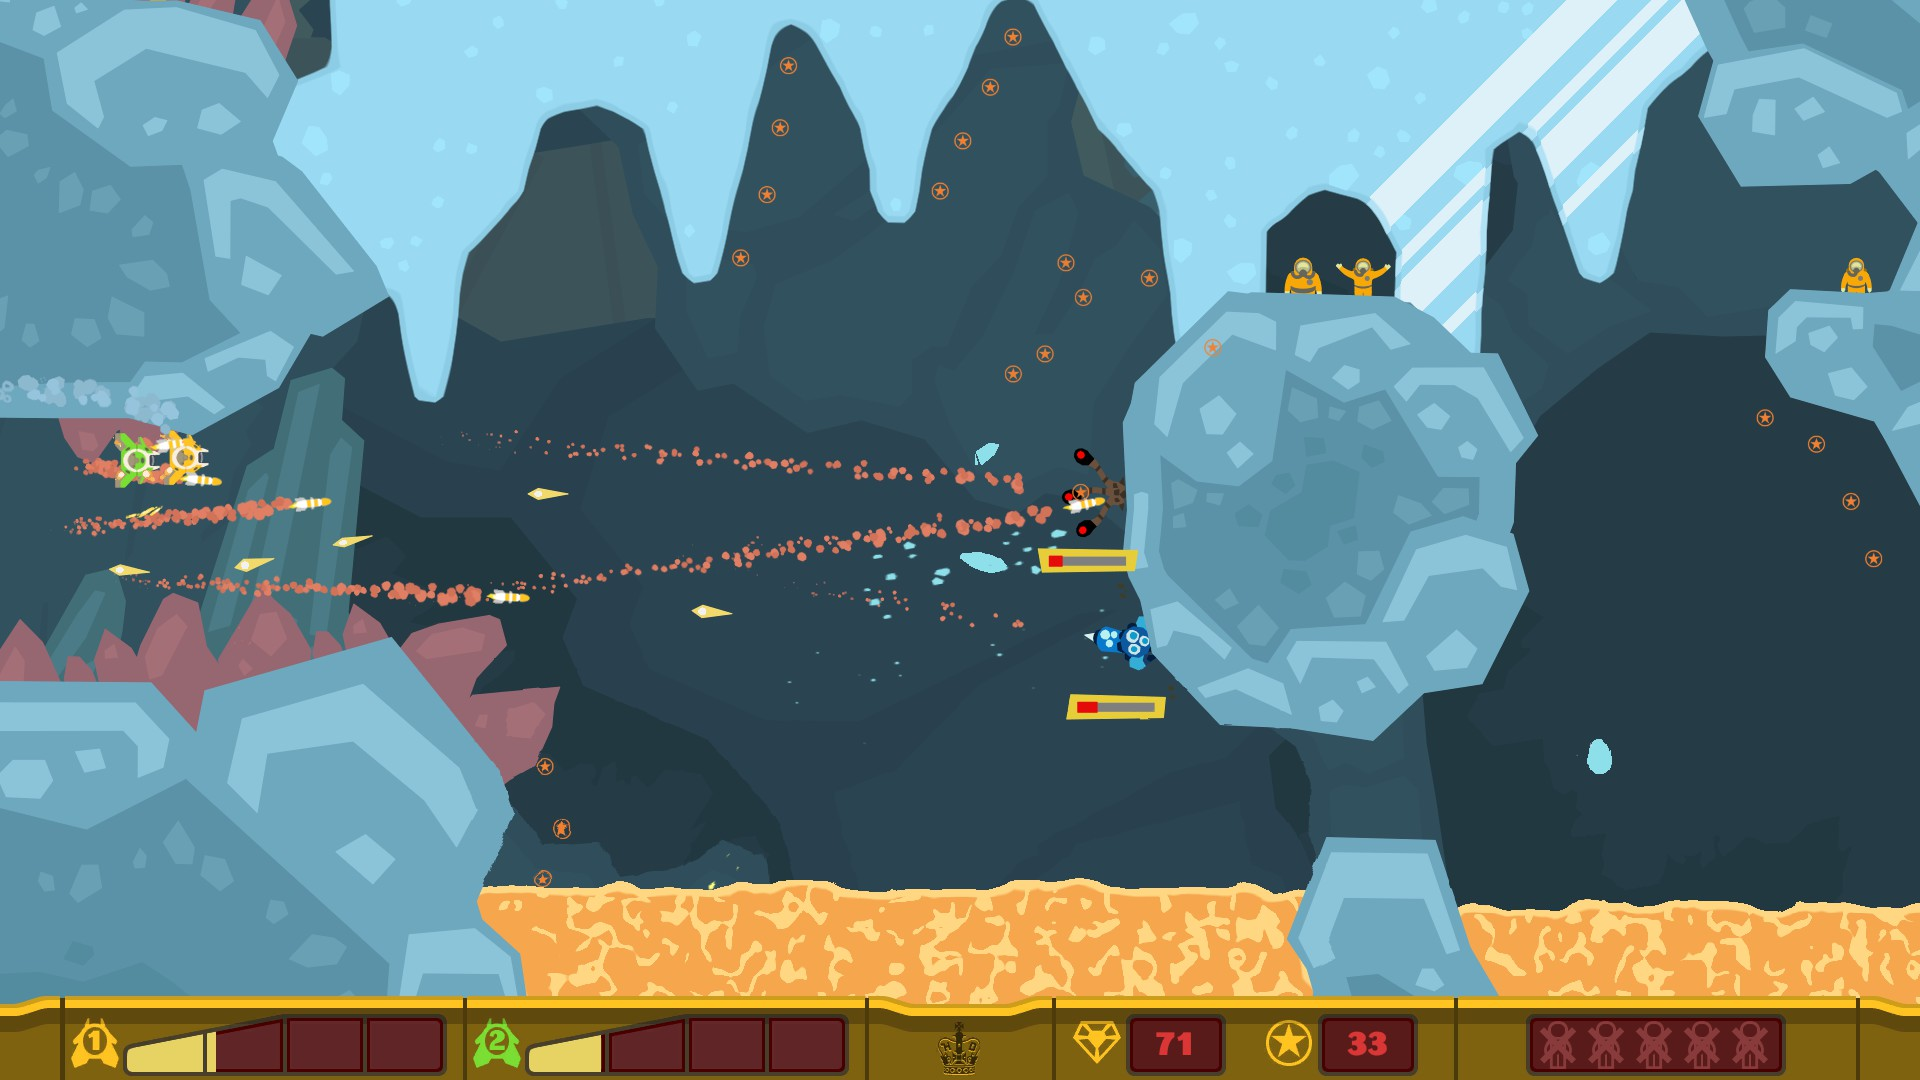 PixelJunk Shooter screenshot 1